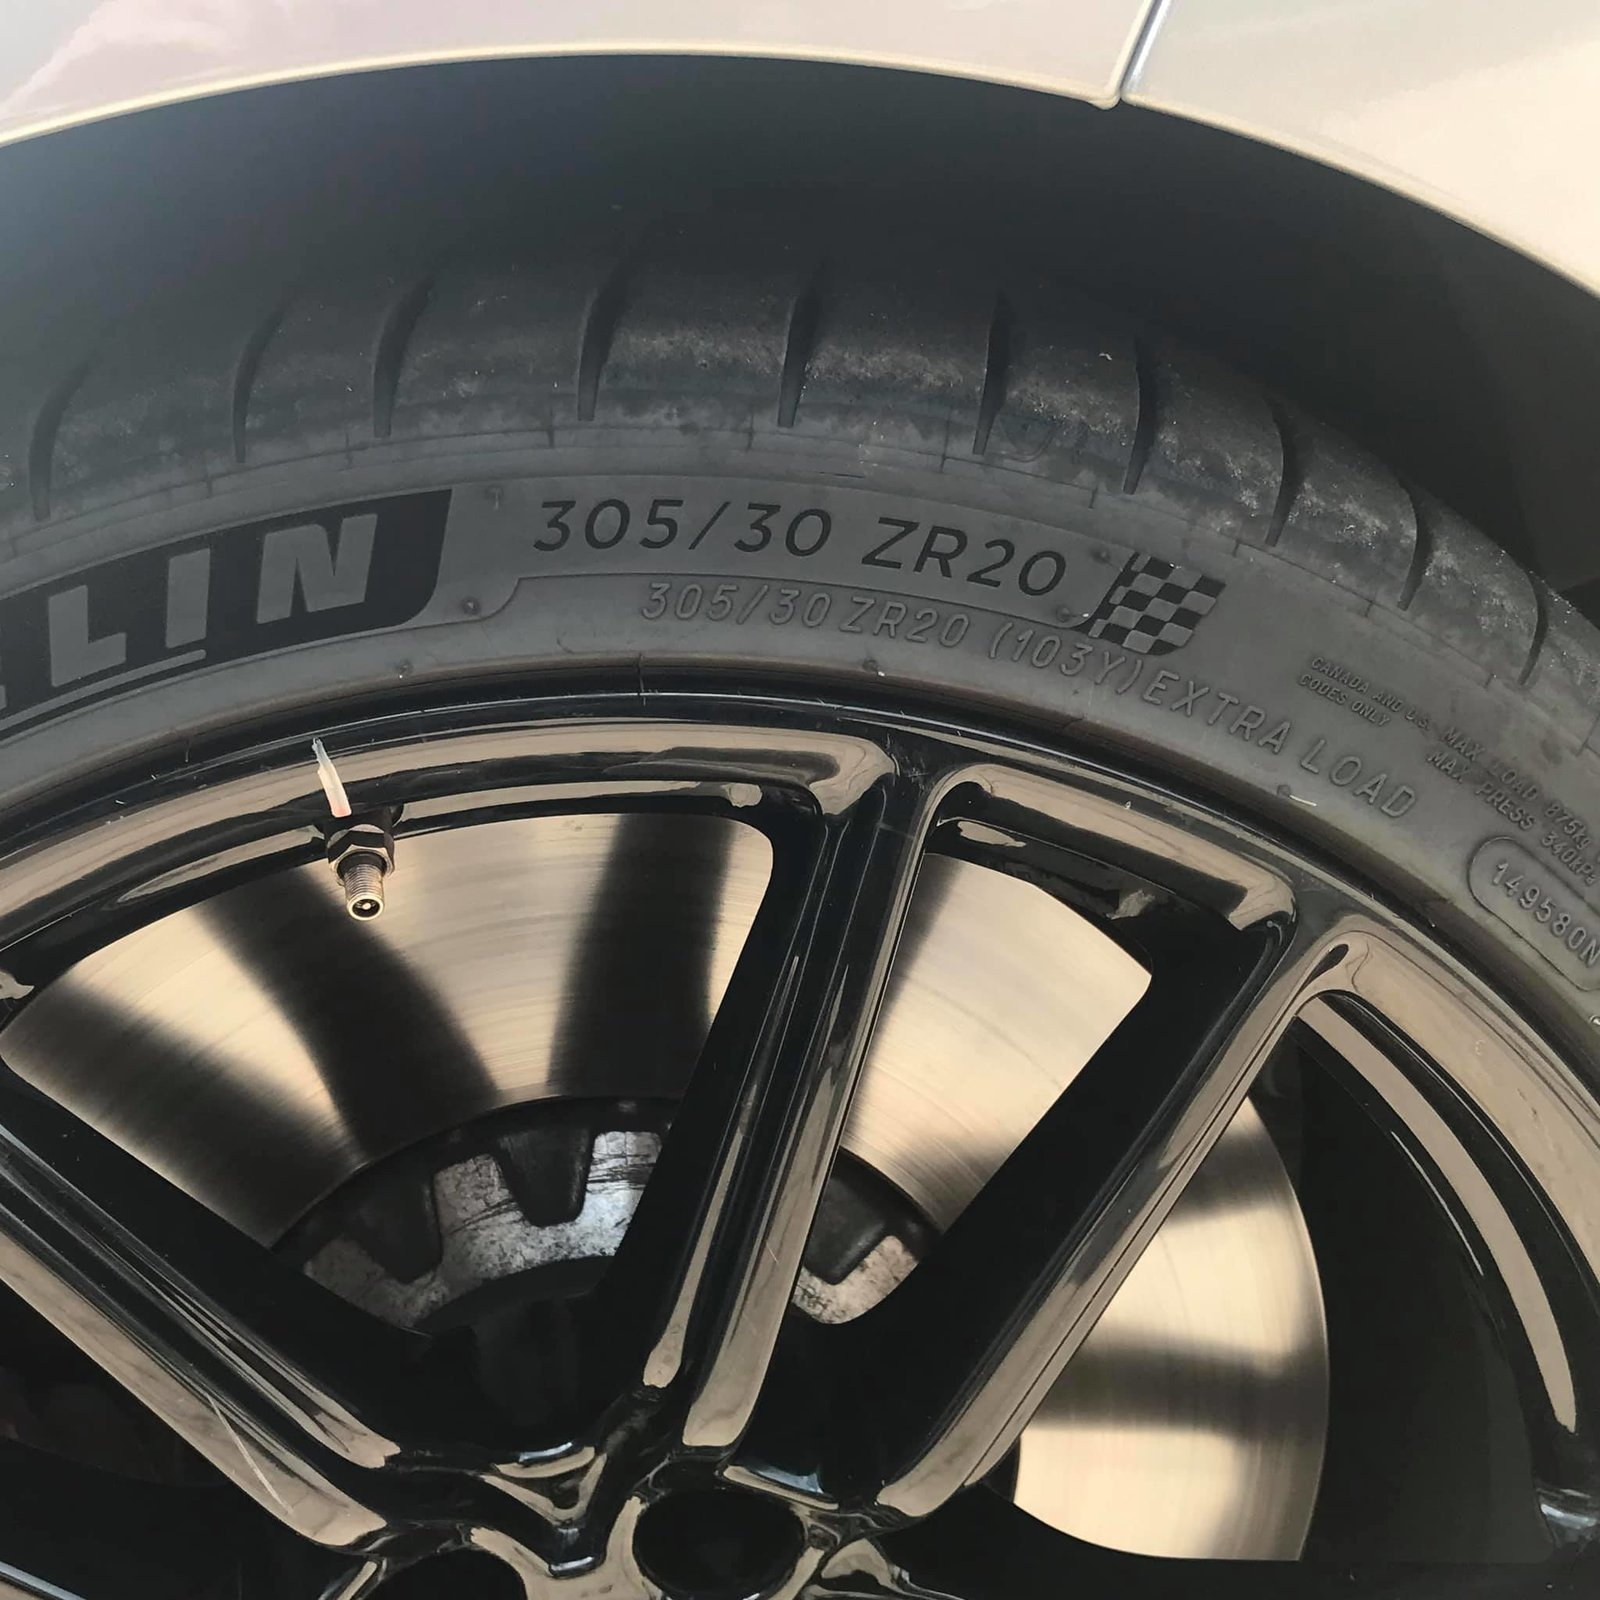 2020 GT500 Base Silver Front Tire Size.jpg